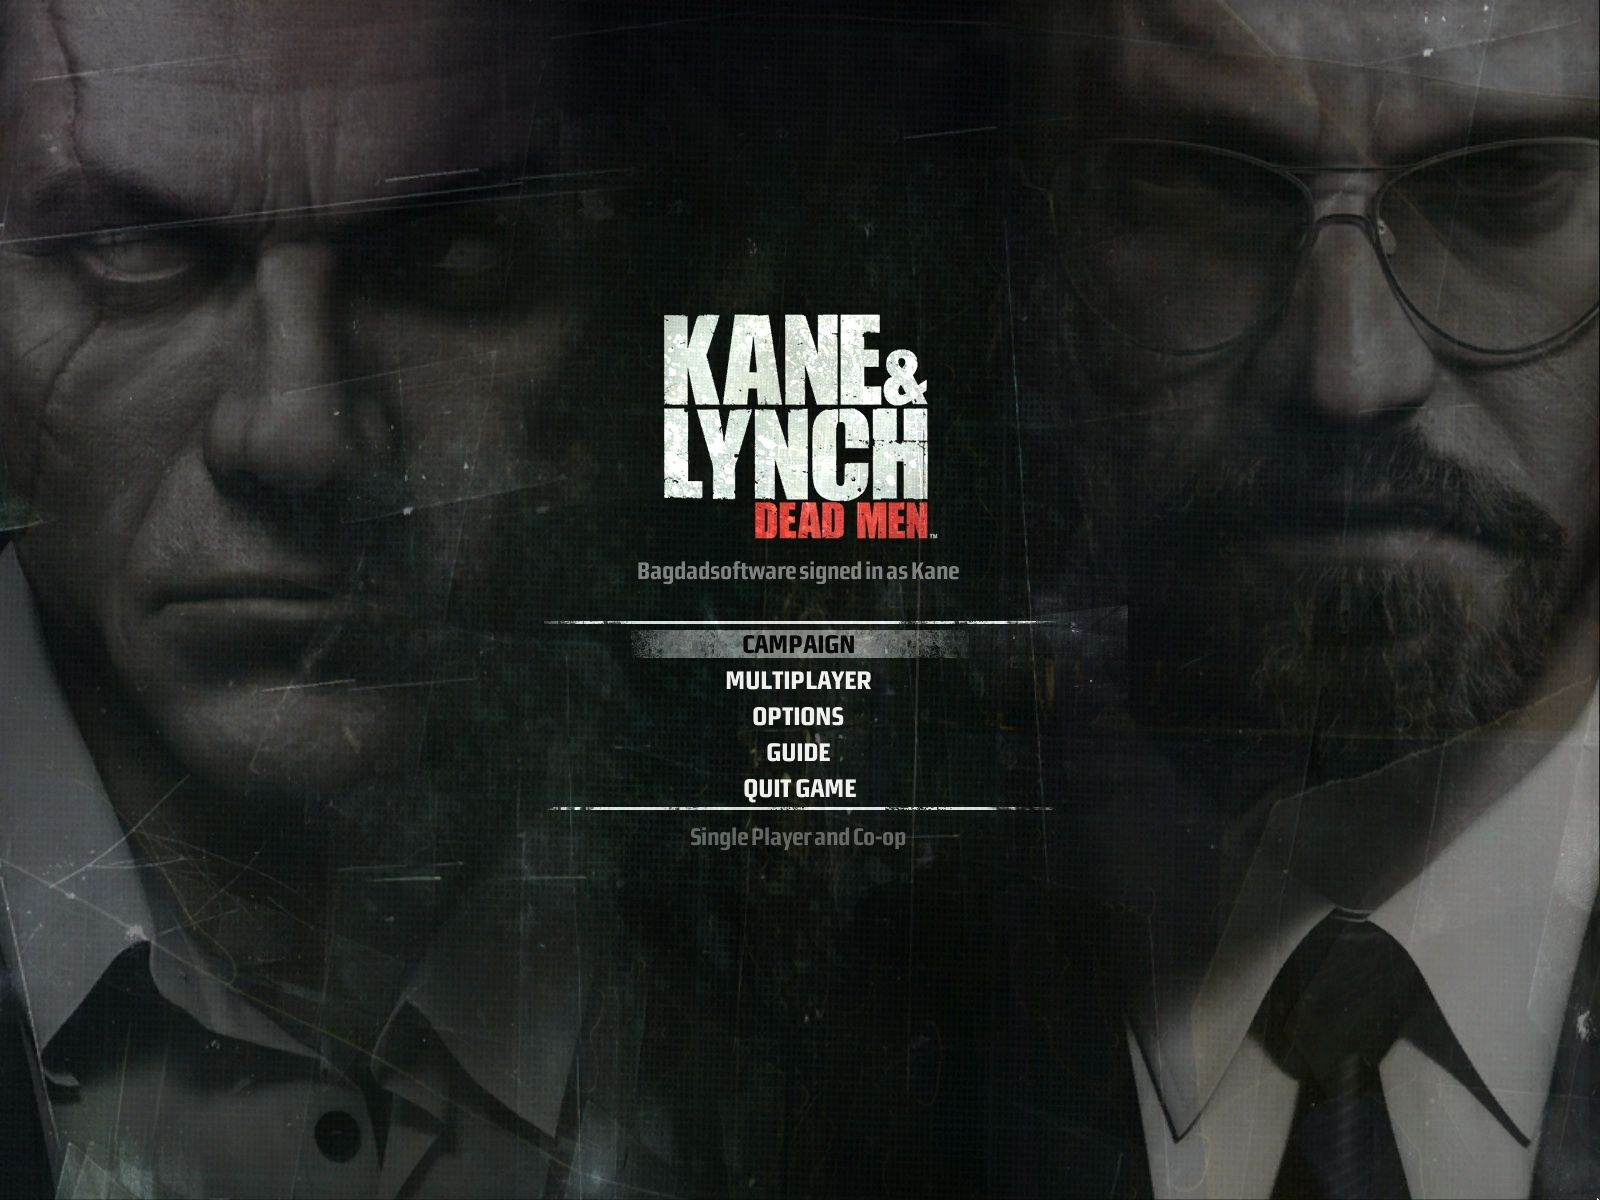 http://www.mobygames.com/images/shots/l/266010-kane-lynch-dead-men-windows-screenshot-main-menus.jpg